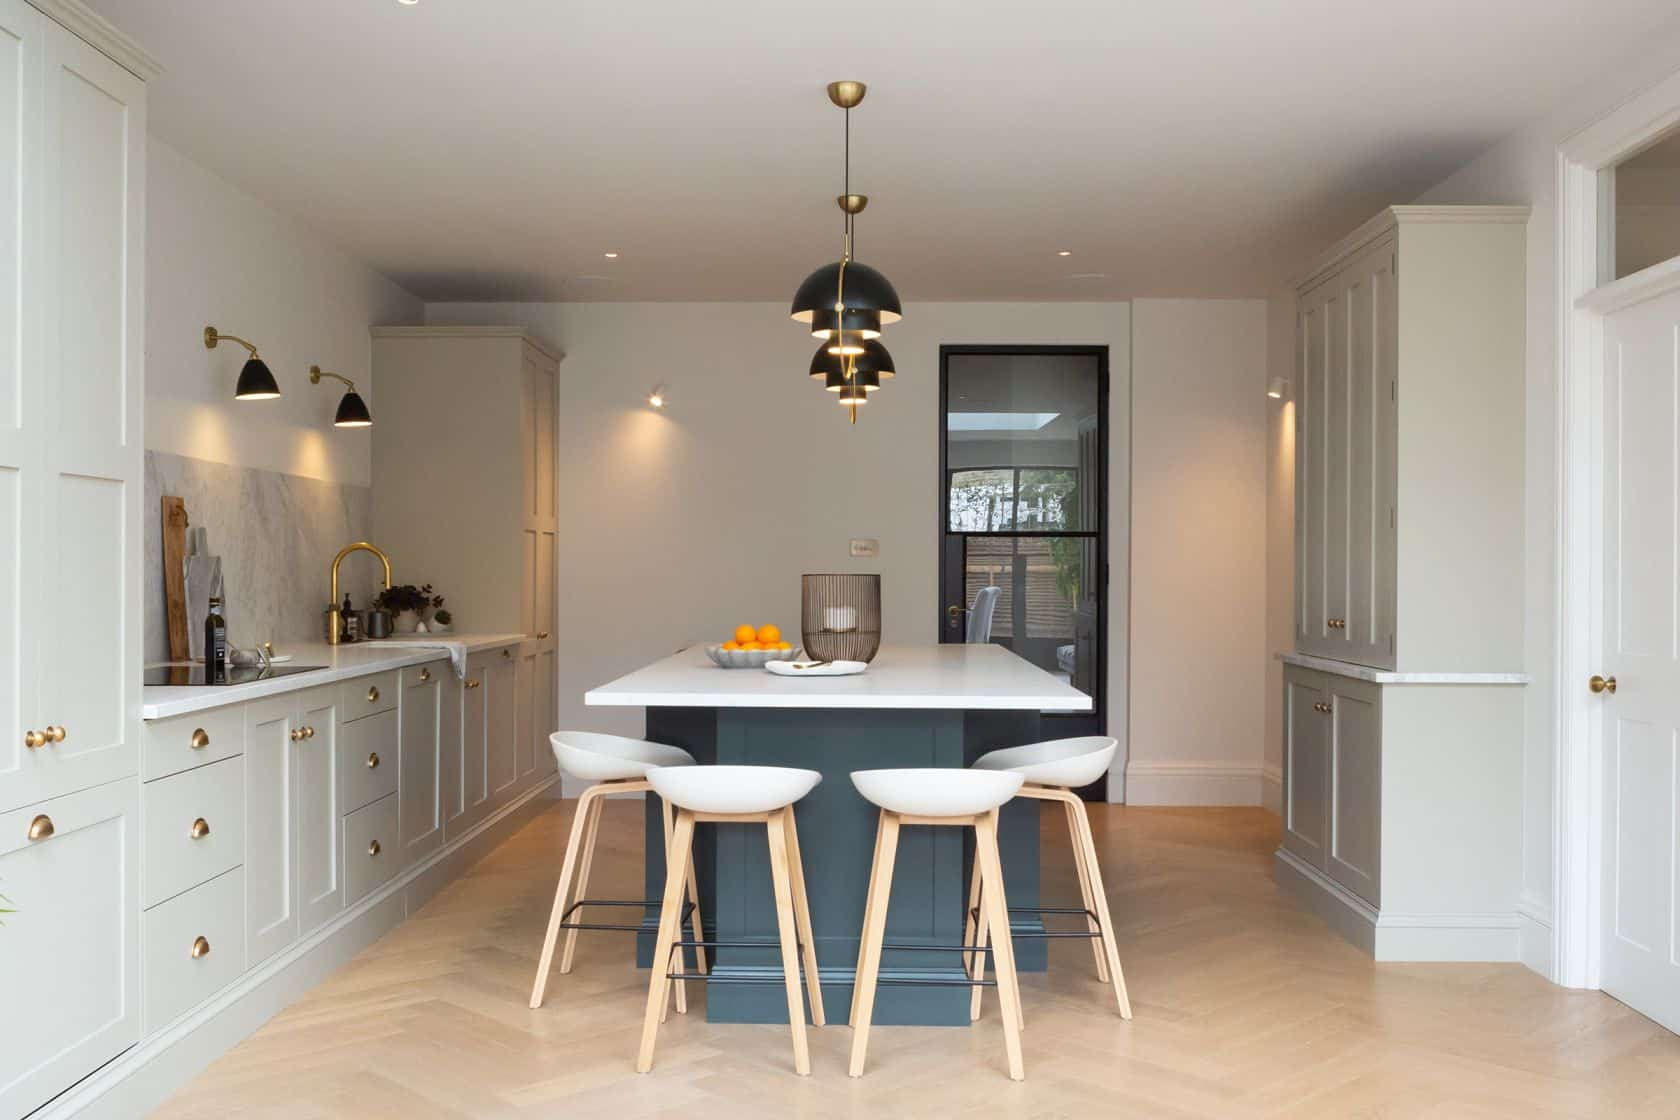 Bespoke Shaker Kitchen John Lewis of Hungerford